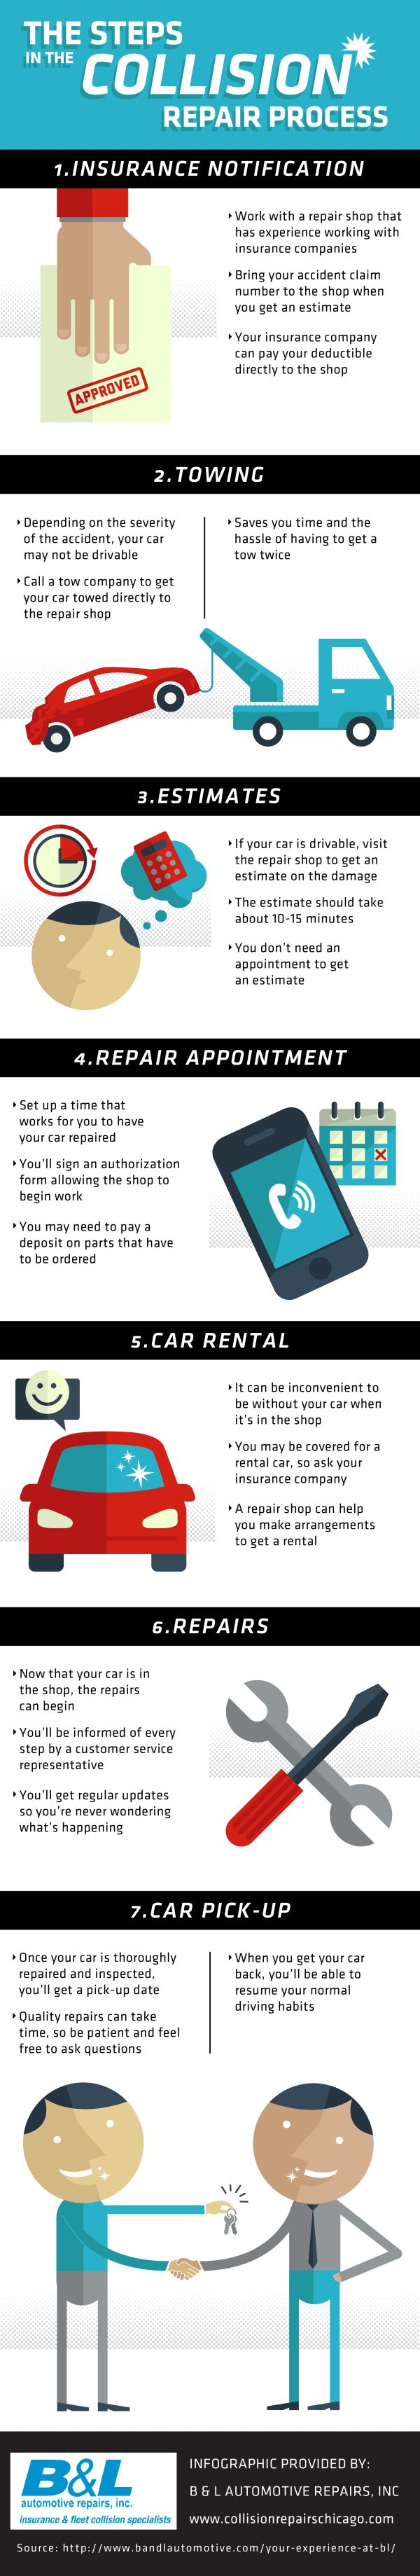 If your car isn't drivable after a collision, you'll need to call a tow company to get your car towed directly to the repair shop. Take a look at this Chicago collision services infographic to see what else you should do after being involved in a car accident.